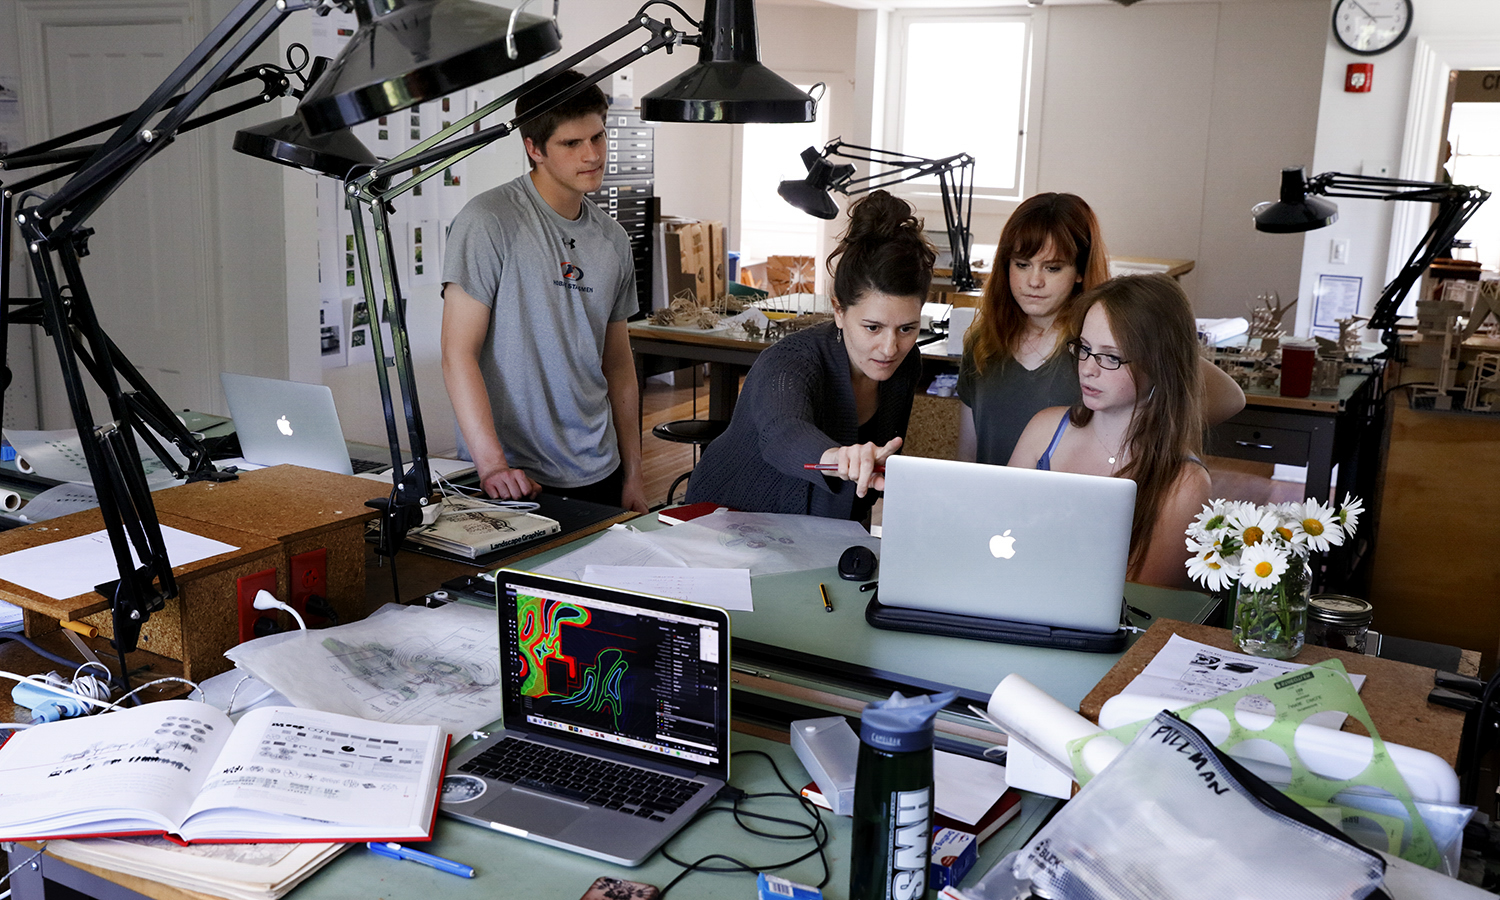 Assistant Professor of Architectural Studies Gabriella DâAngelo instructs students on how to use AutoCAD to transfer their hand drawn designs to the computer. J.P. White â17, Audrey English â17, Sarah Pullman â18 and Garth Burke â17 (not pictured) are creating landscape designs for the area around the new Richard S. Perkin Observatory.